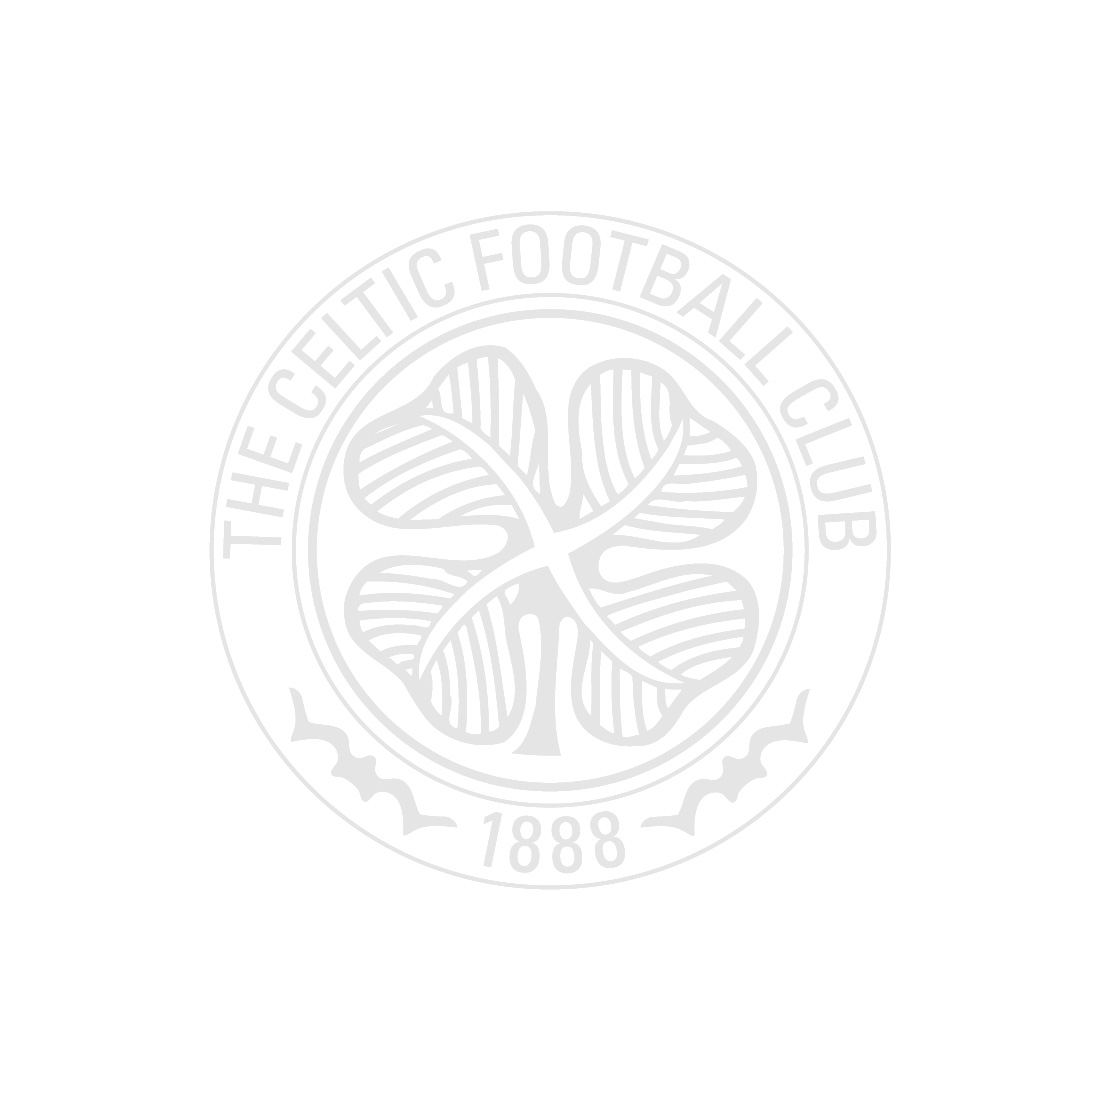 Celtic Father's Day Card